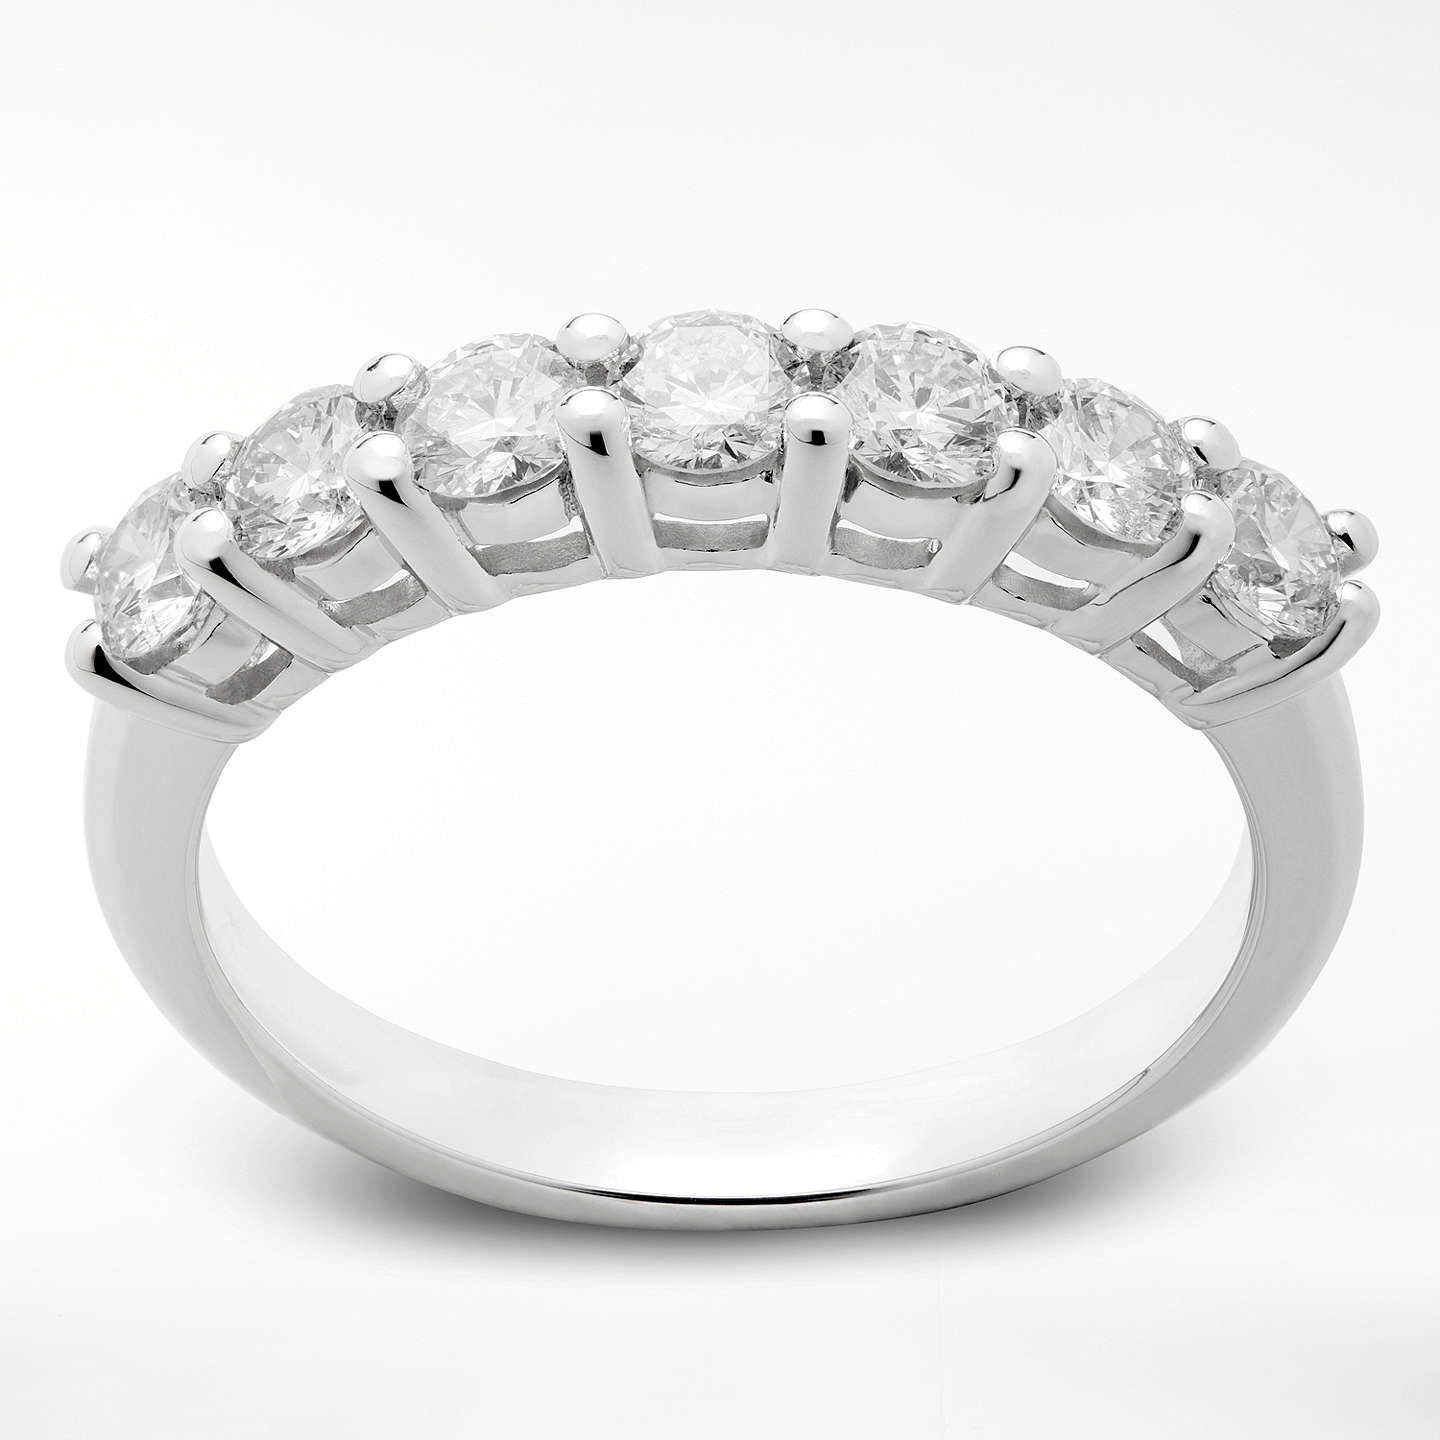 rings diamond jewellery trio three in sided ring white gold micropav wedding band eternity top